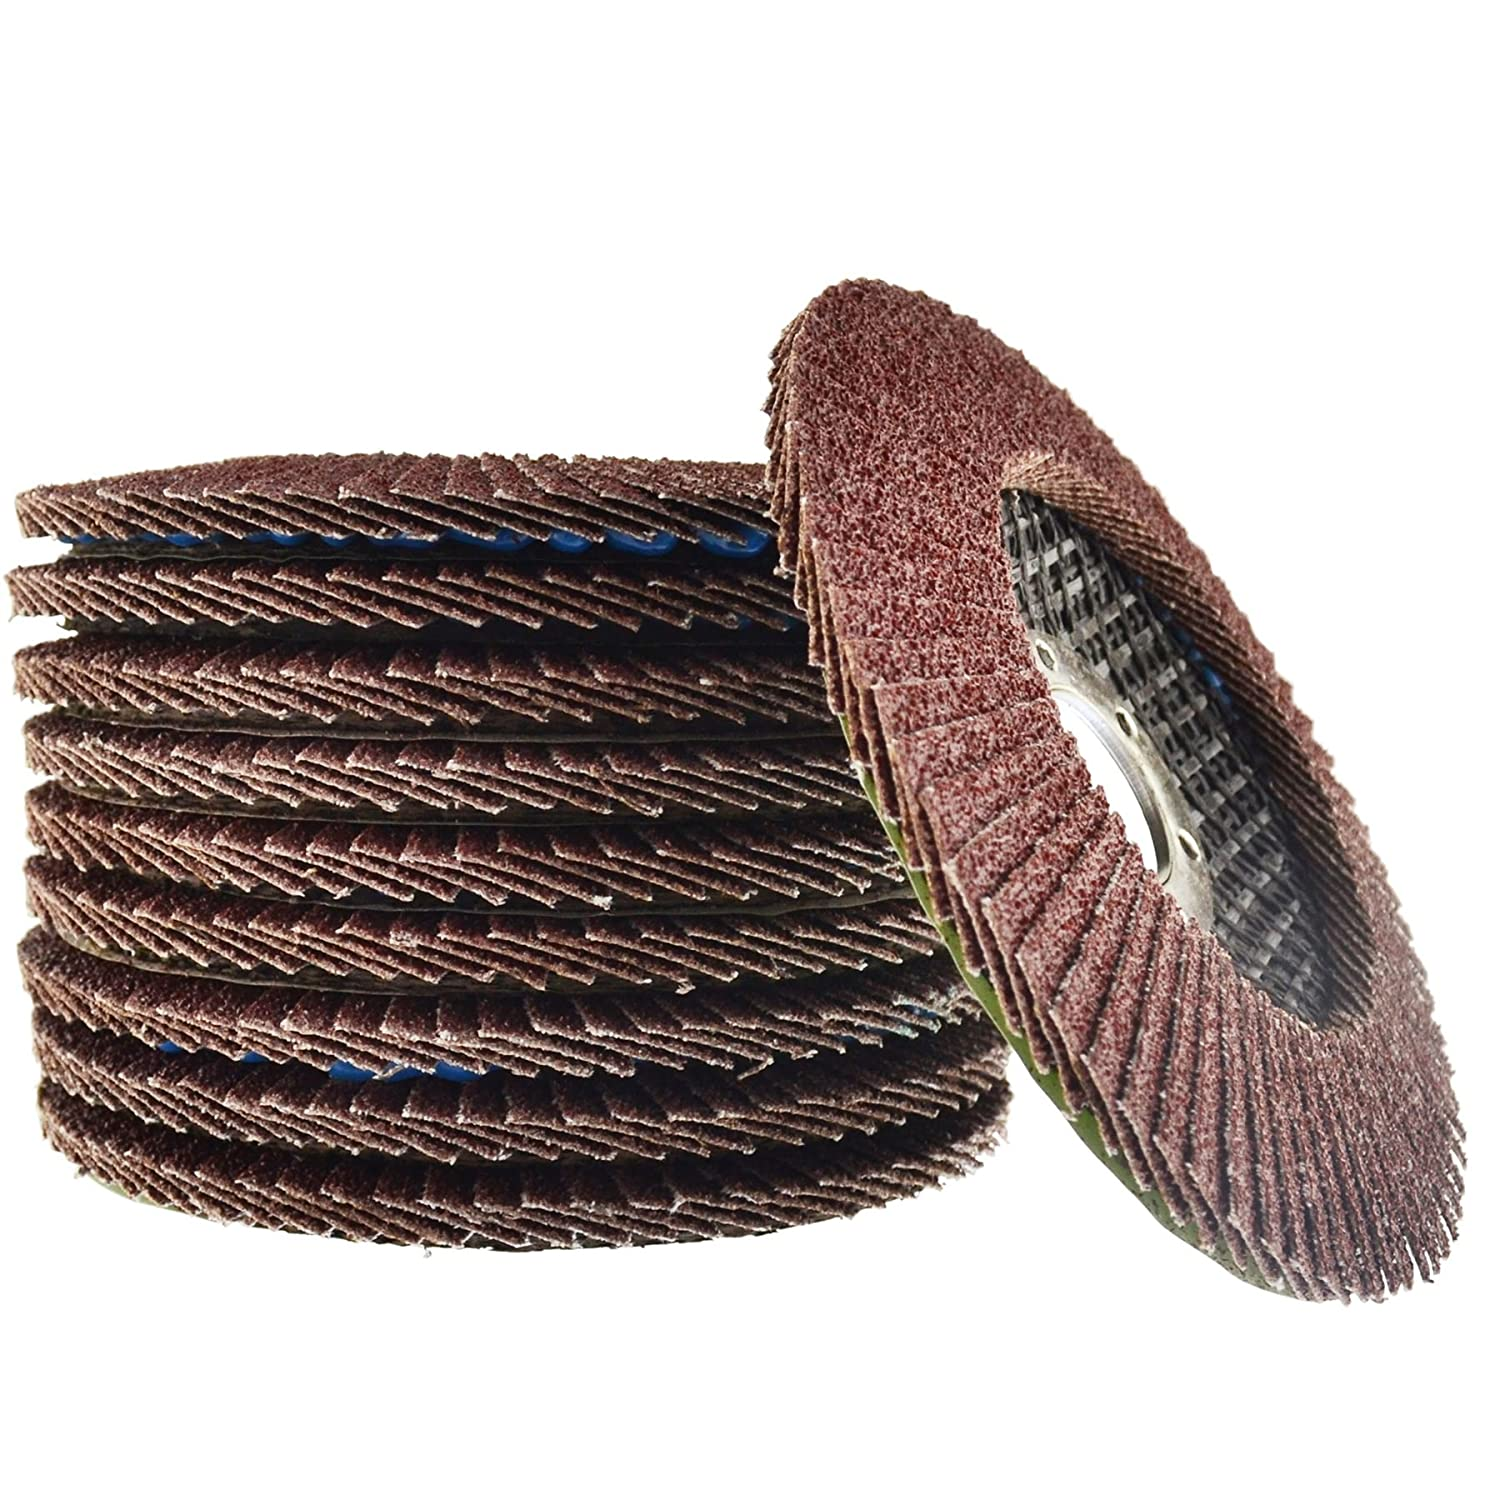 10 x Flap Discs 60 Grit Angle Grinder 4.5' (115mm) Flat Sanding Grinding AT929 AB Tools